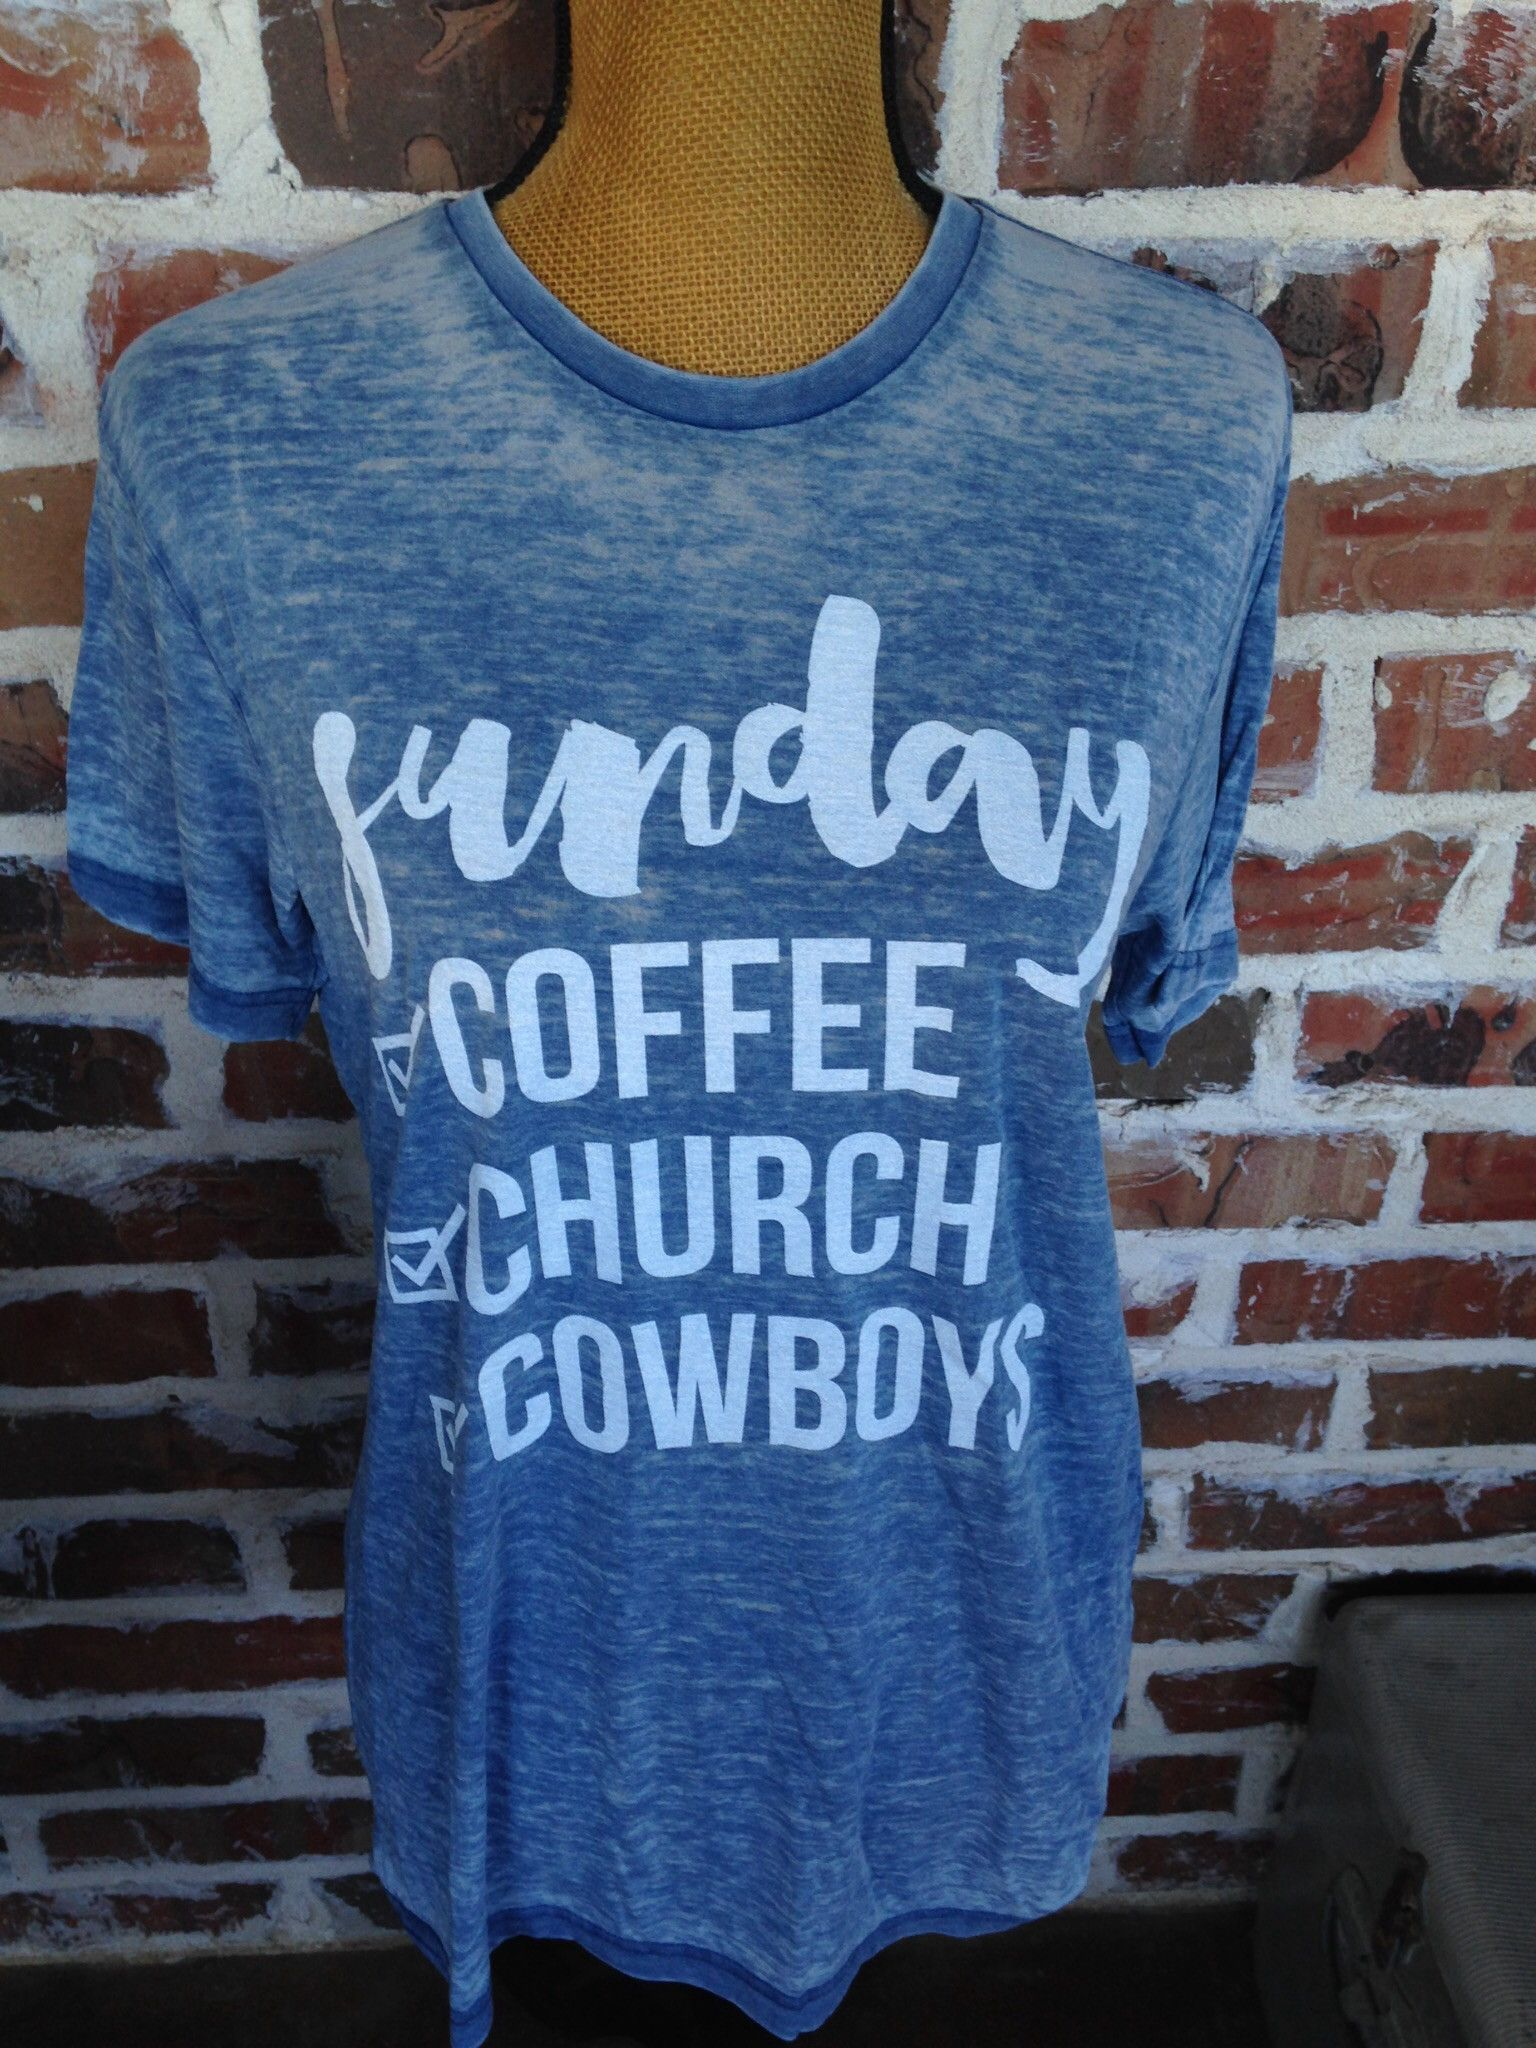 Sunday Check List T-Shirt #churchoutfitfall This super cute acid washed tee is for all our Cowboy fans! A perfect Tee for Gameday. A gorgeous shade of blue with your Sunday check list - coffee, church, Cowboys. This shirt fits exactly true to s #churchoutfitfall